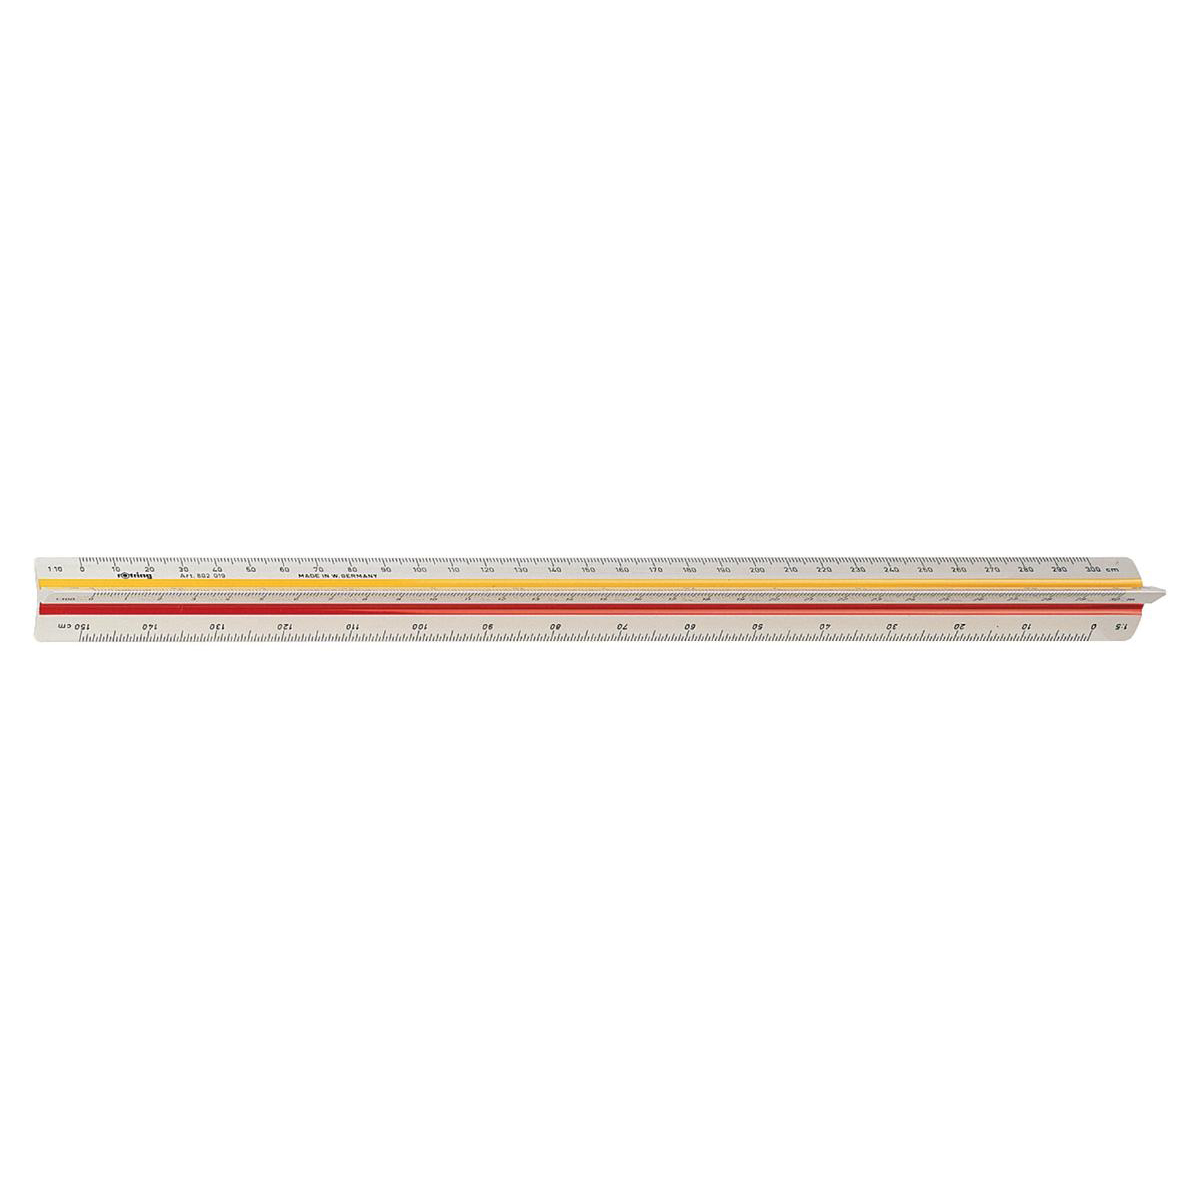 Image for Rotring Ruler Triangular Reduction Scale 6 Surveying 1:25 to 1:2500 with 2 Coloured Flutings Ref S0220721